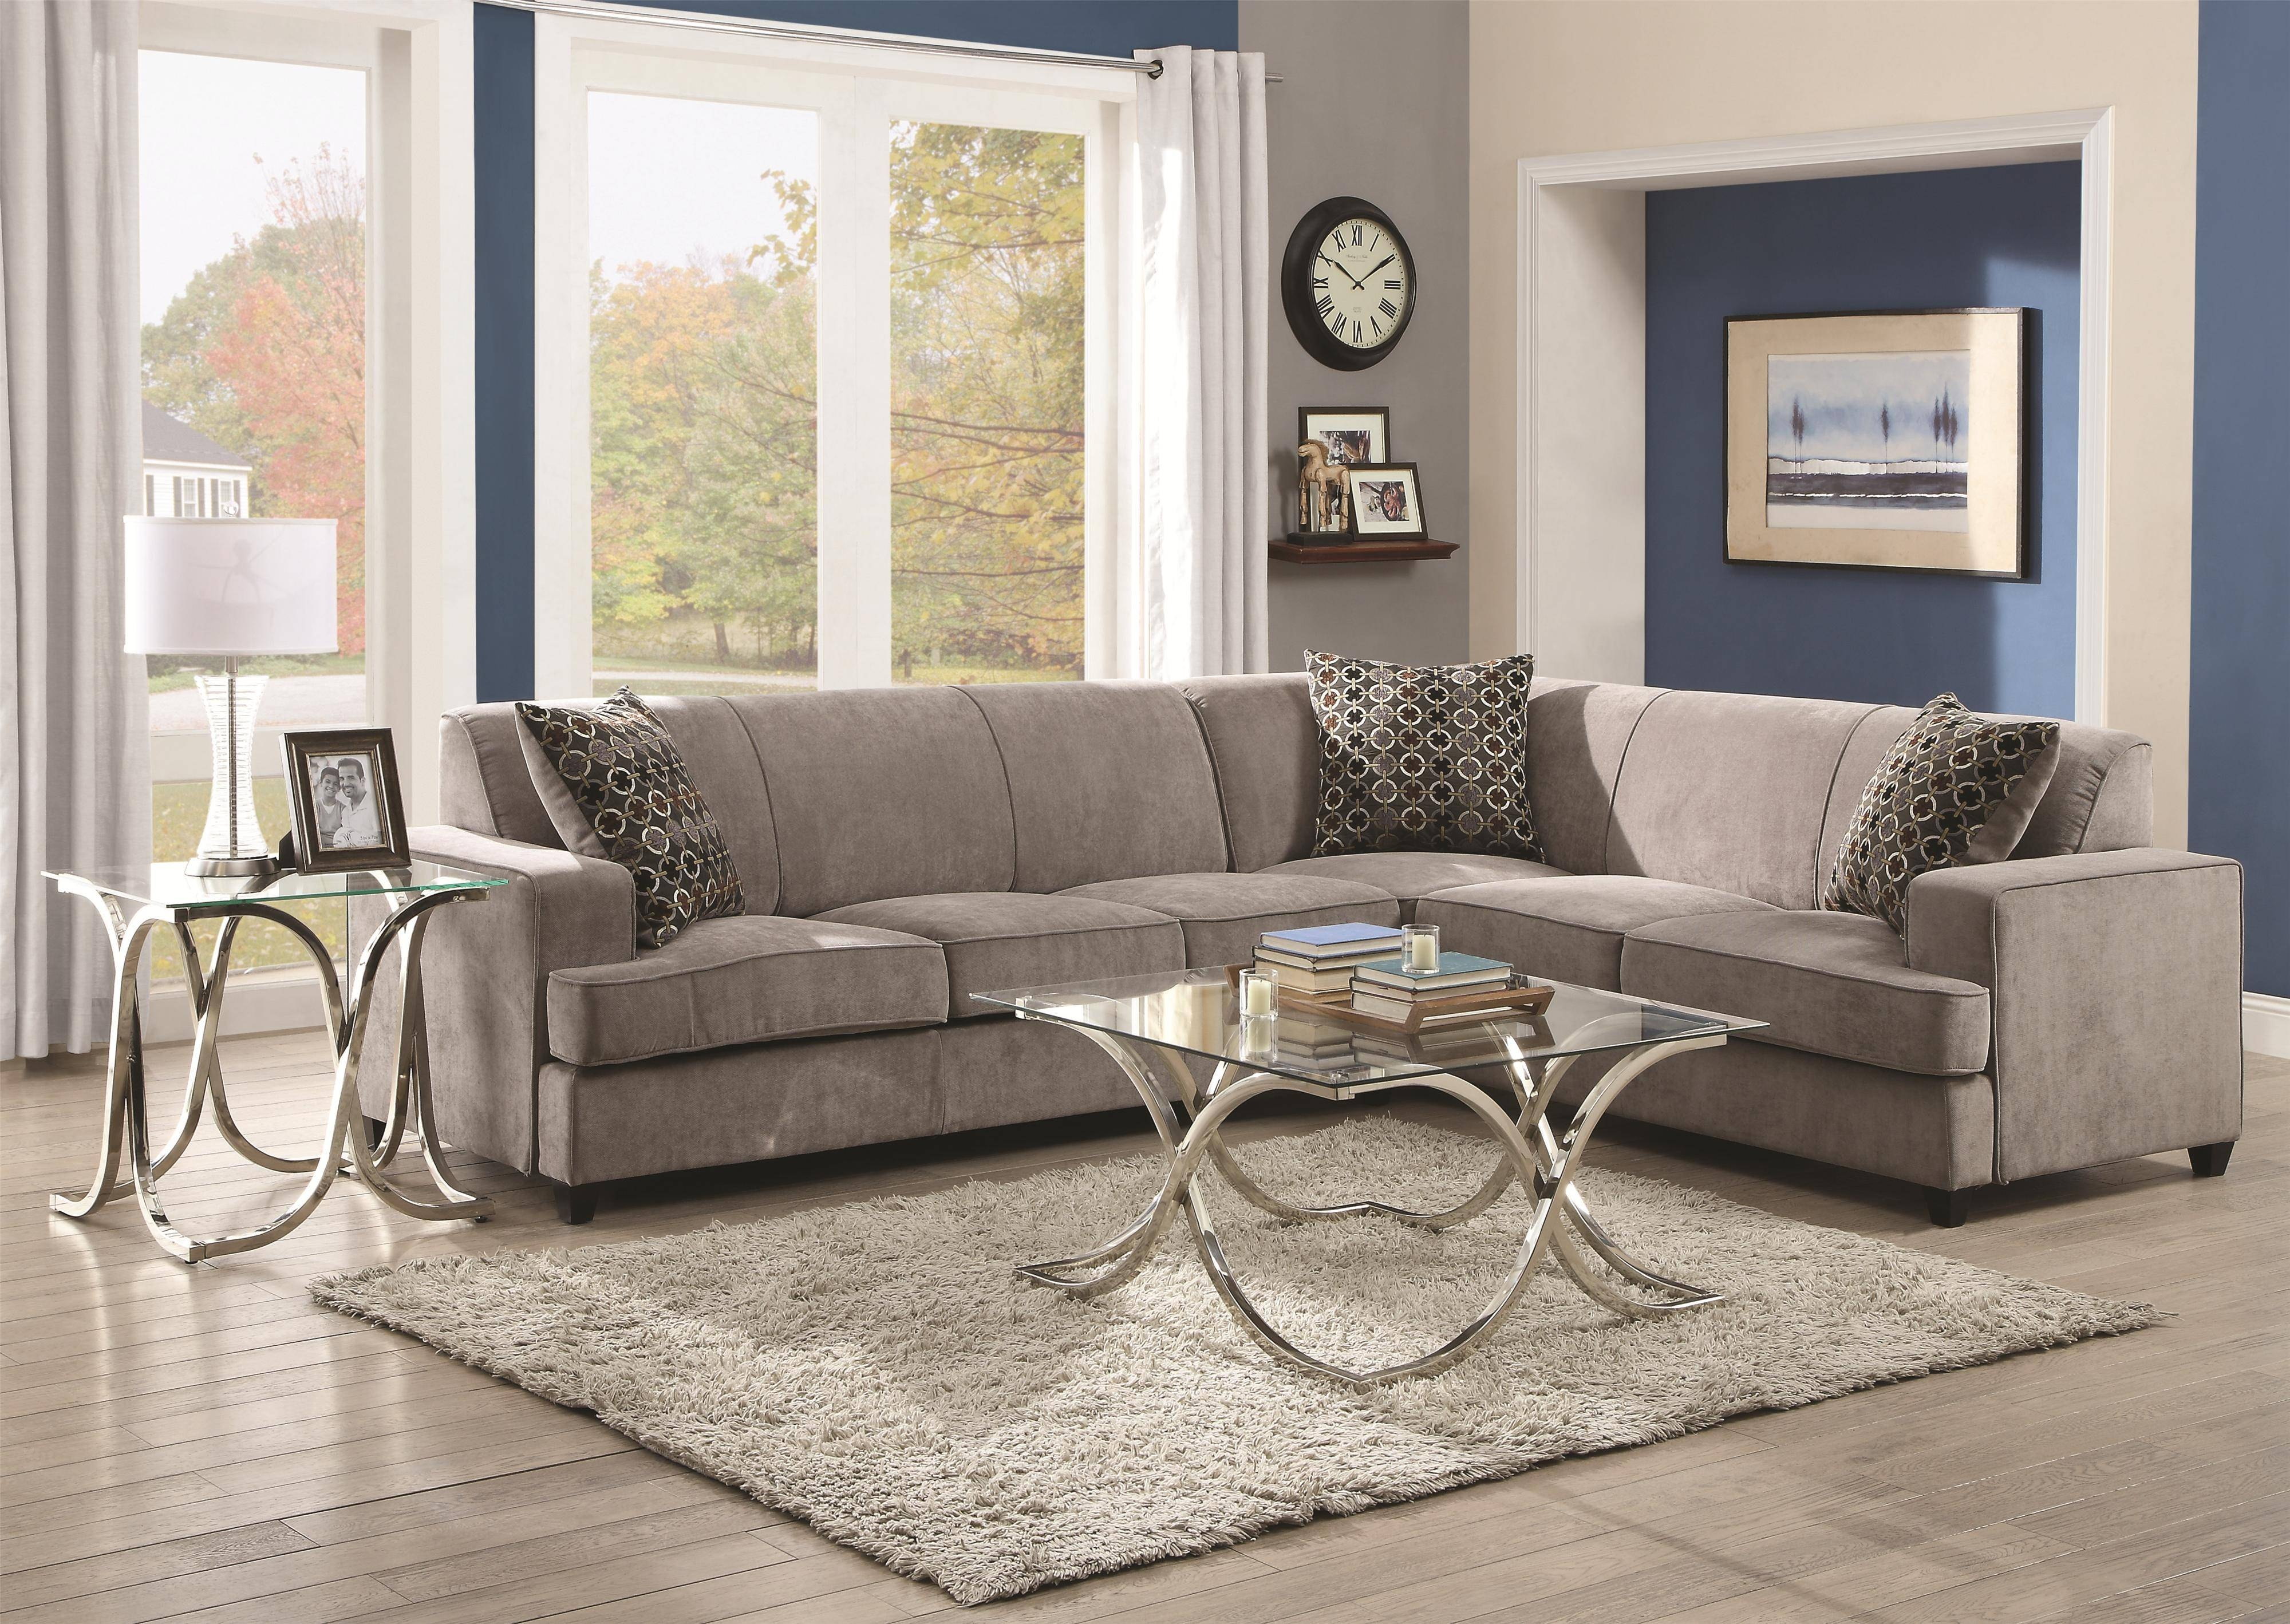 Coaster – Find A Local Furniture Store With Coaster Fine Furniture With Regard To Coasters Sofas (View 2 of 15)